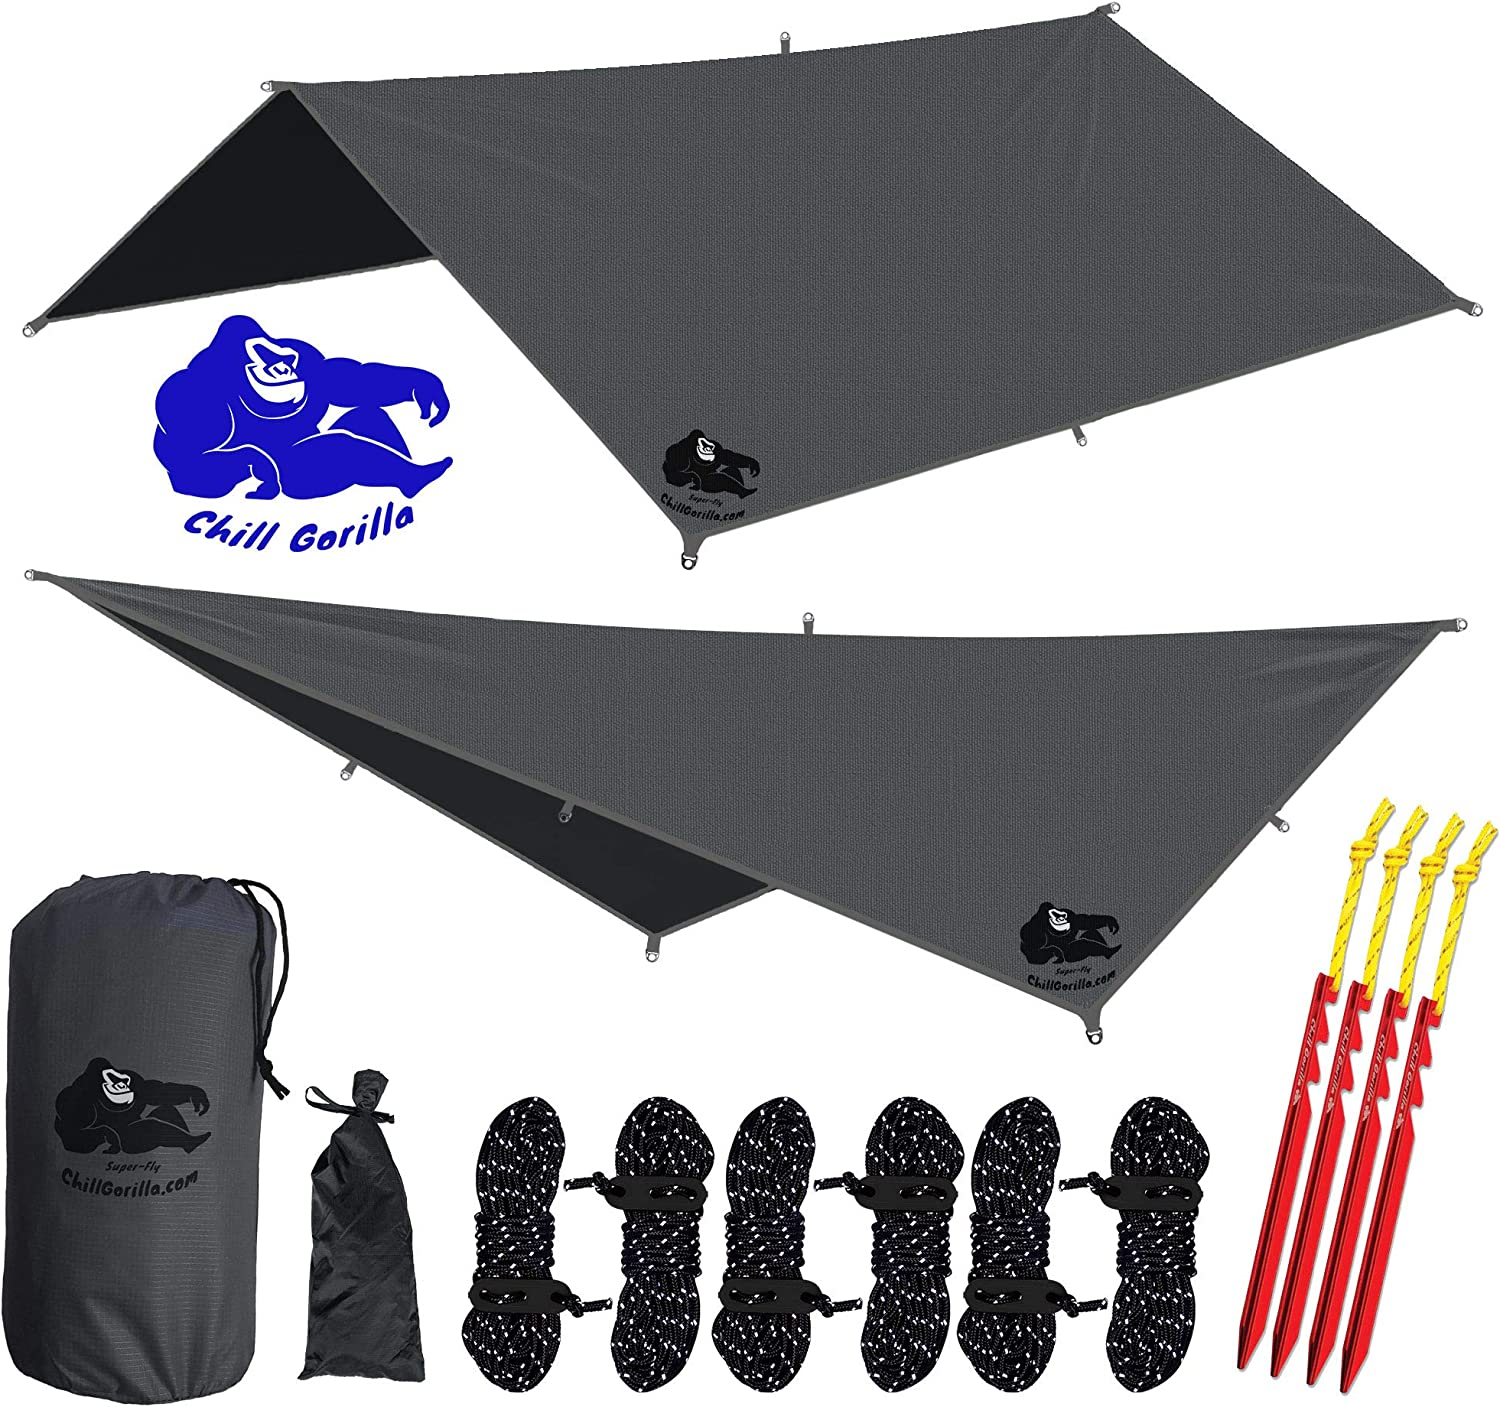 "Chill Gorilla 10x10 Hammock Rain Fly Camping Tarp. Ripstop Nylon. 170"" Centerline. Stakes, Ropes & Tensioners Included. Camping Gear & Accessories. Perfect Hammock Tent. Multiple Colors."